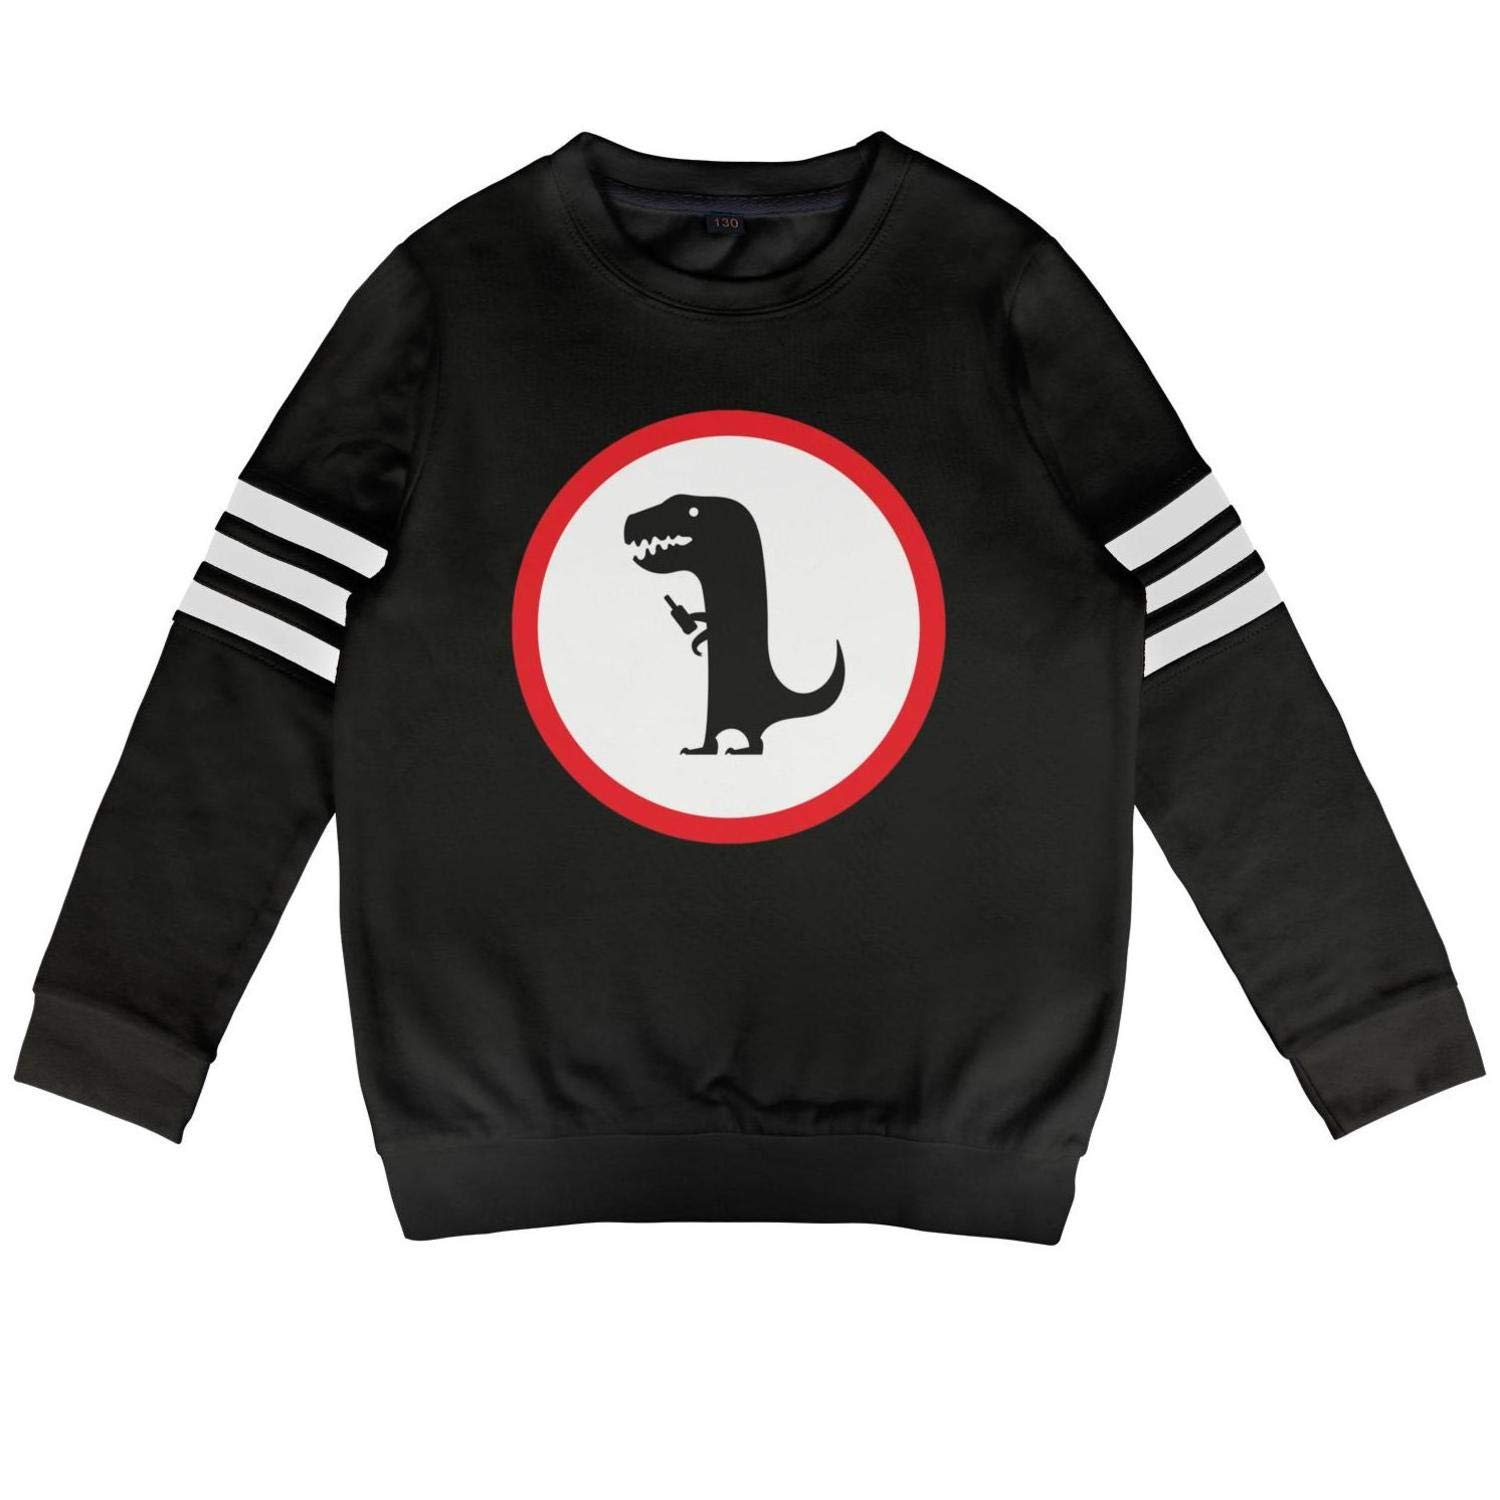 Mr Dinosaur 45 Years Daylight Kids Crewneck Cotton Long Sleeve Sweatshirt Huge Dinosaur Hooded Sweatshirt Boys Girls